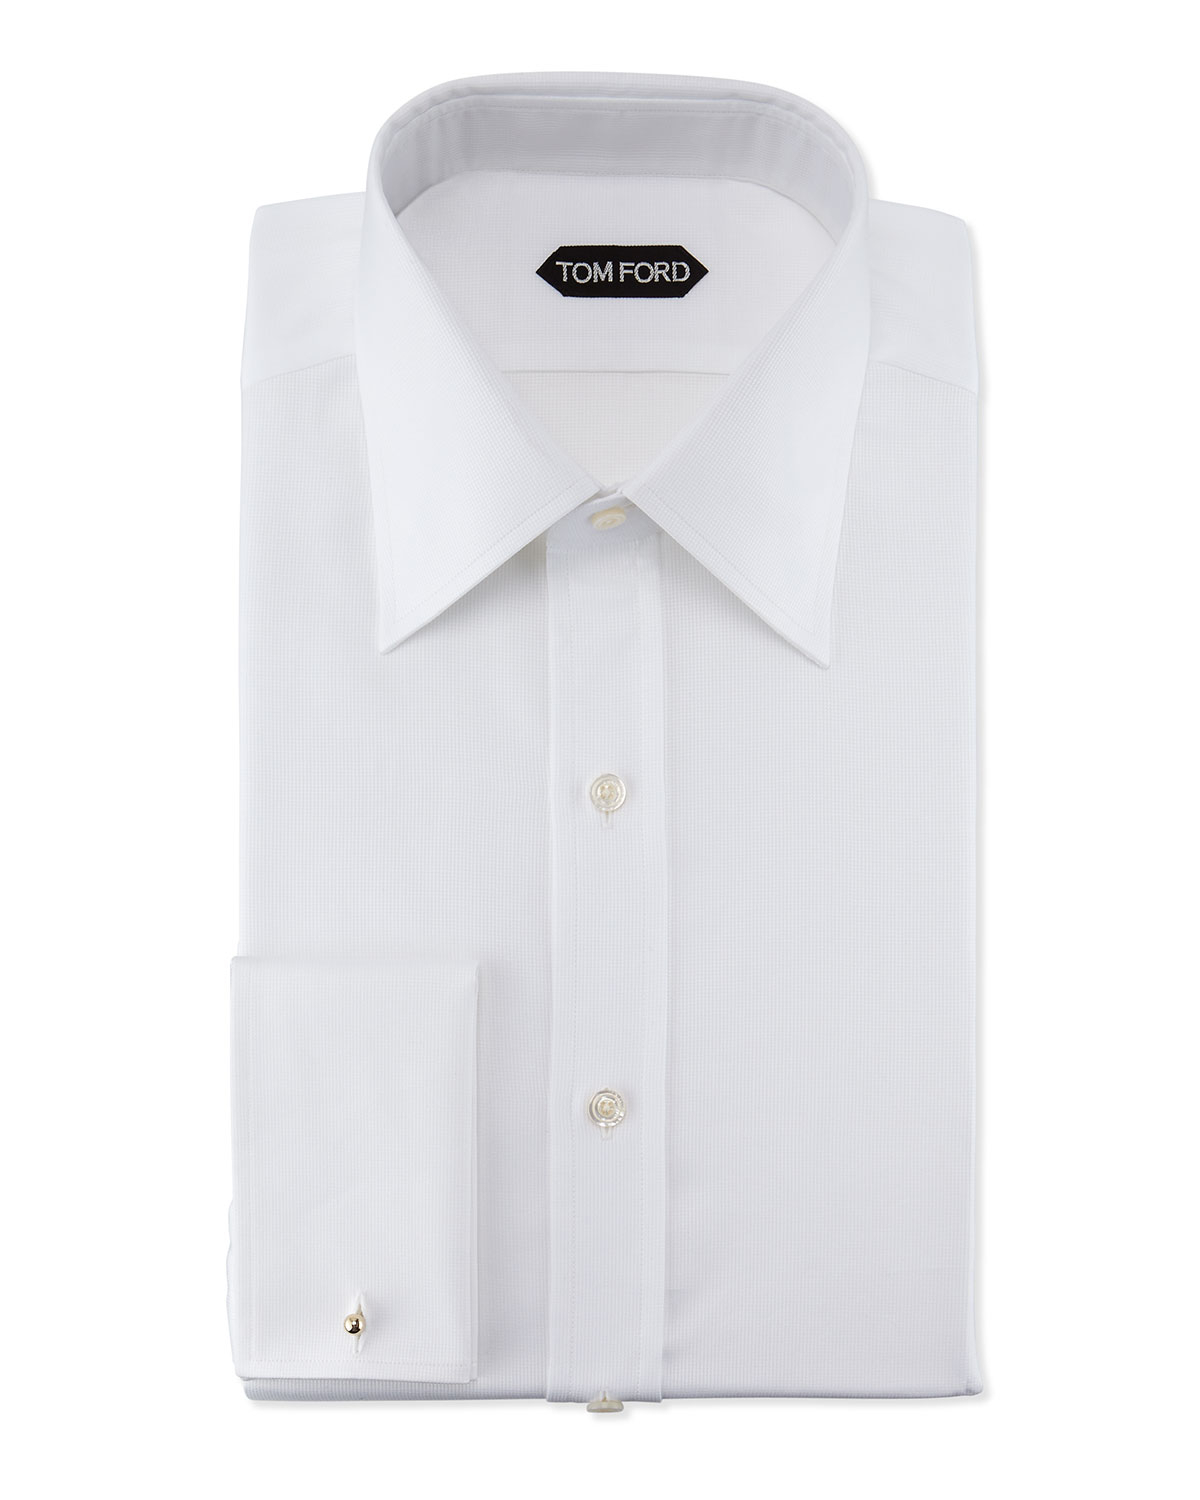 Tom Ford Slim Fit Classic Dress Shirt In White For Men Lyst